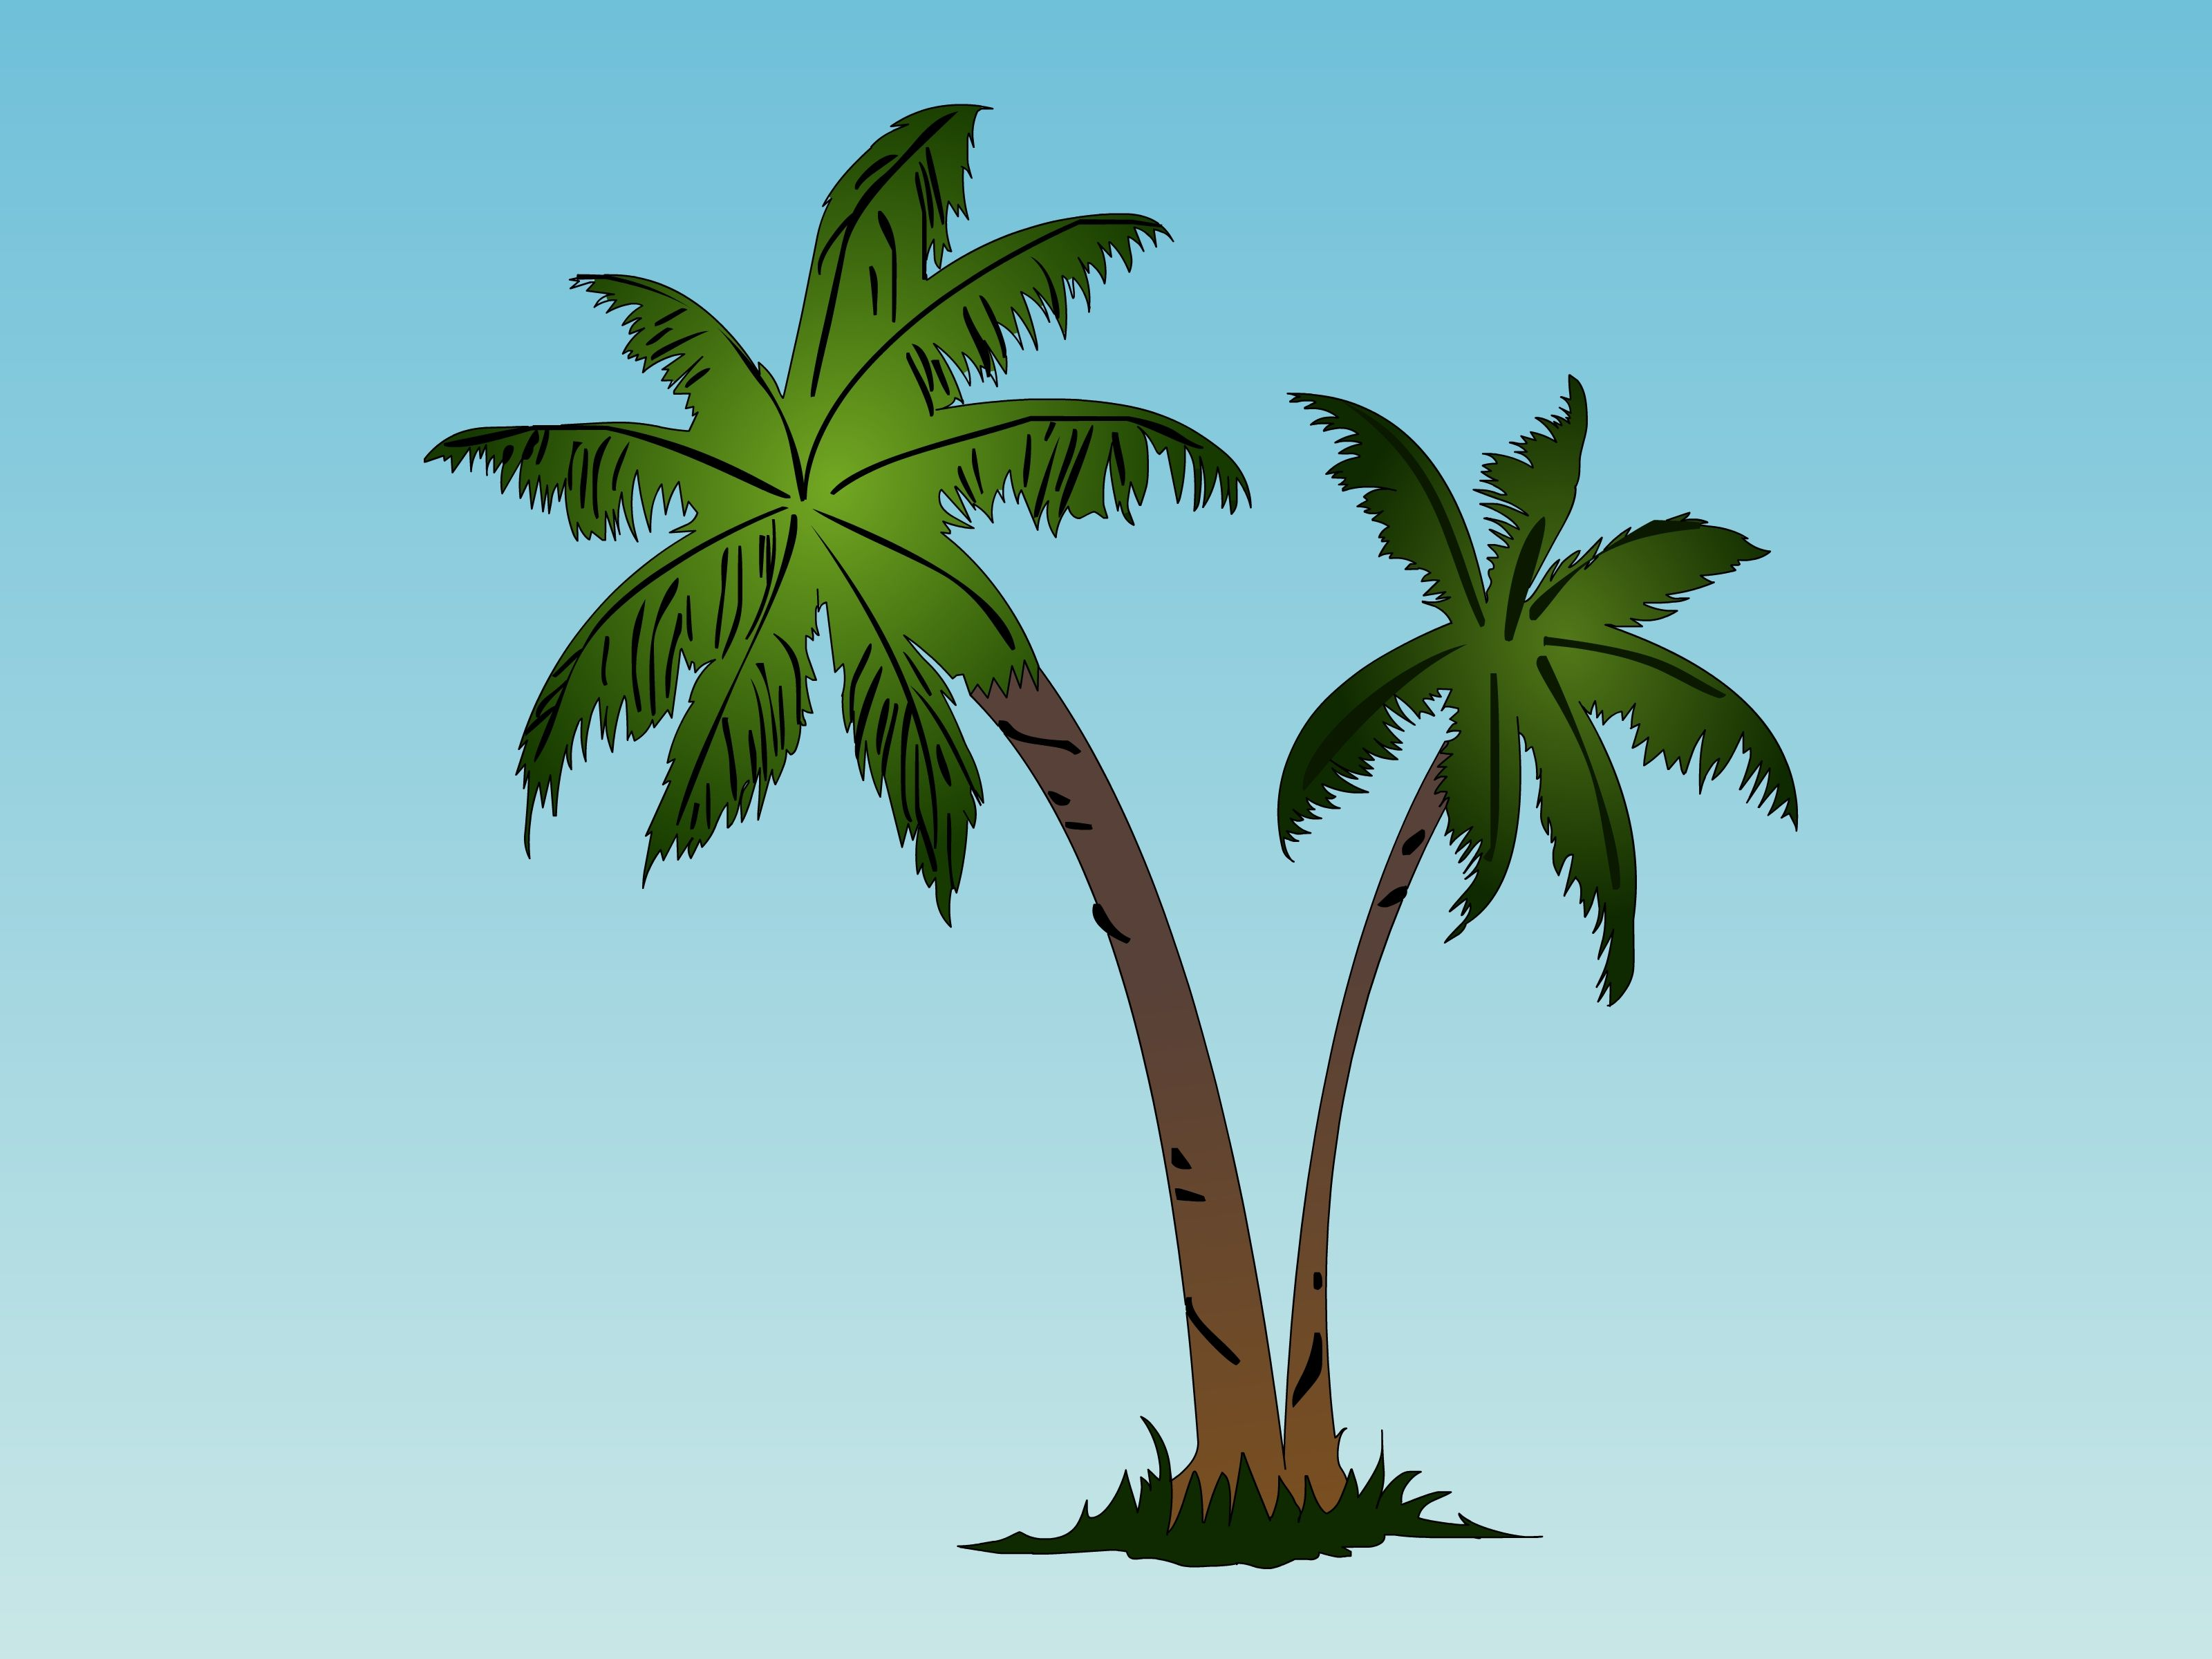 Palm Trees Drawing at GetDrawings.com | Free for personal use Palm ...